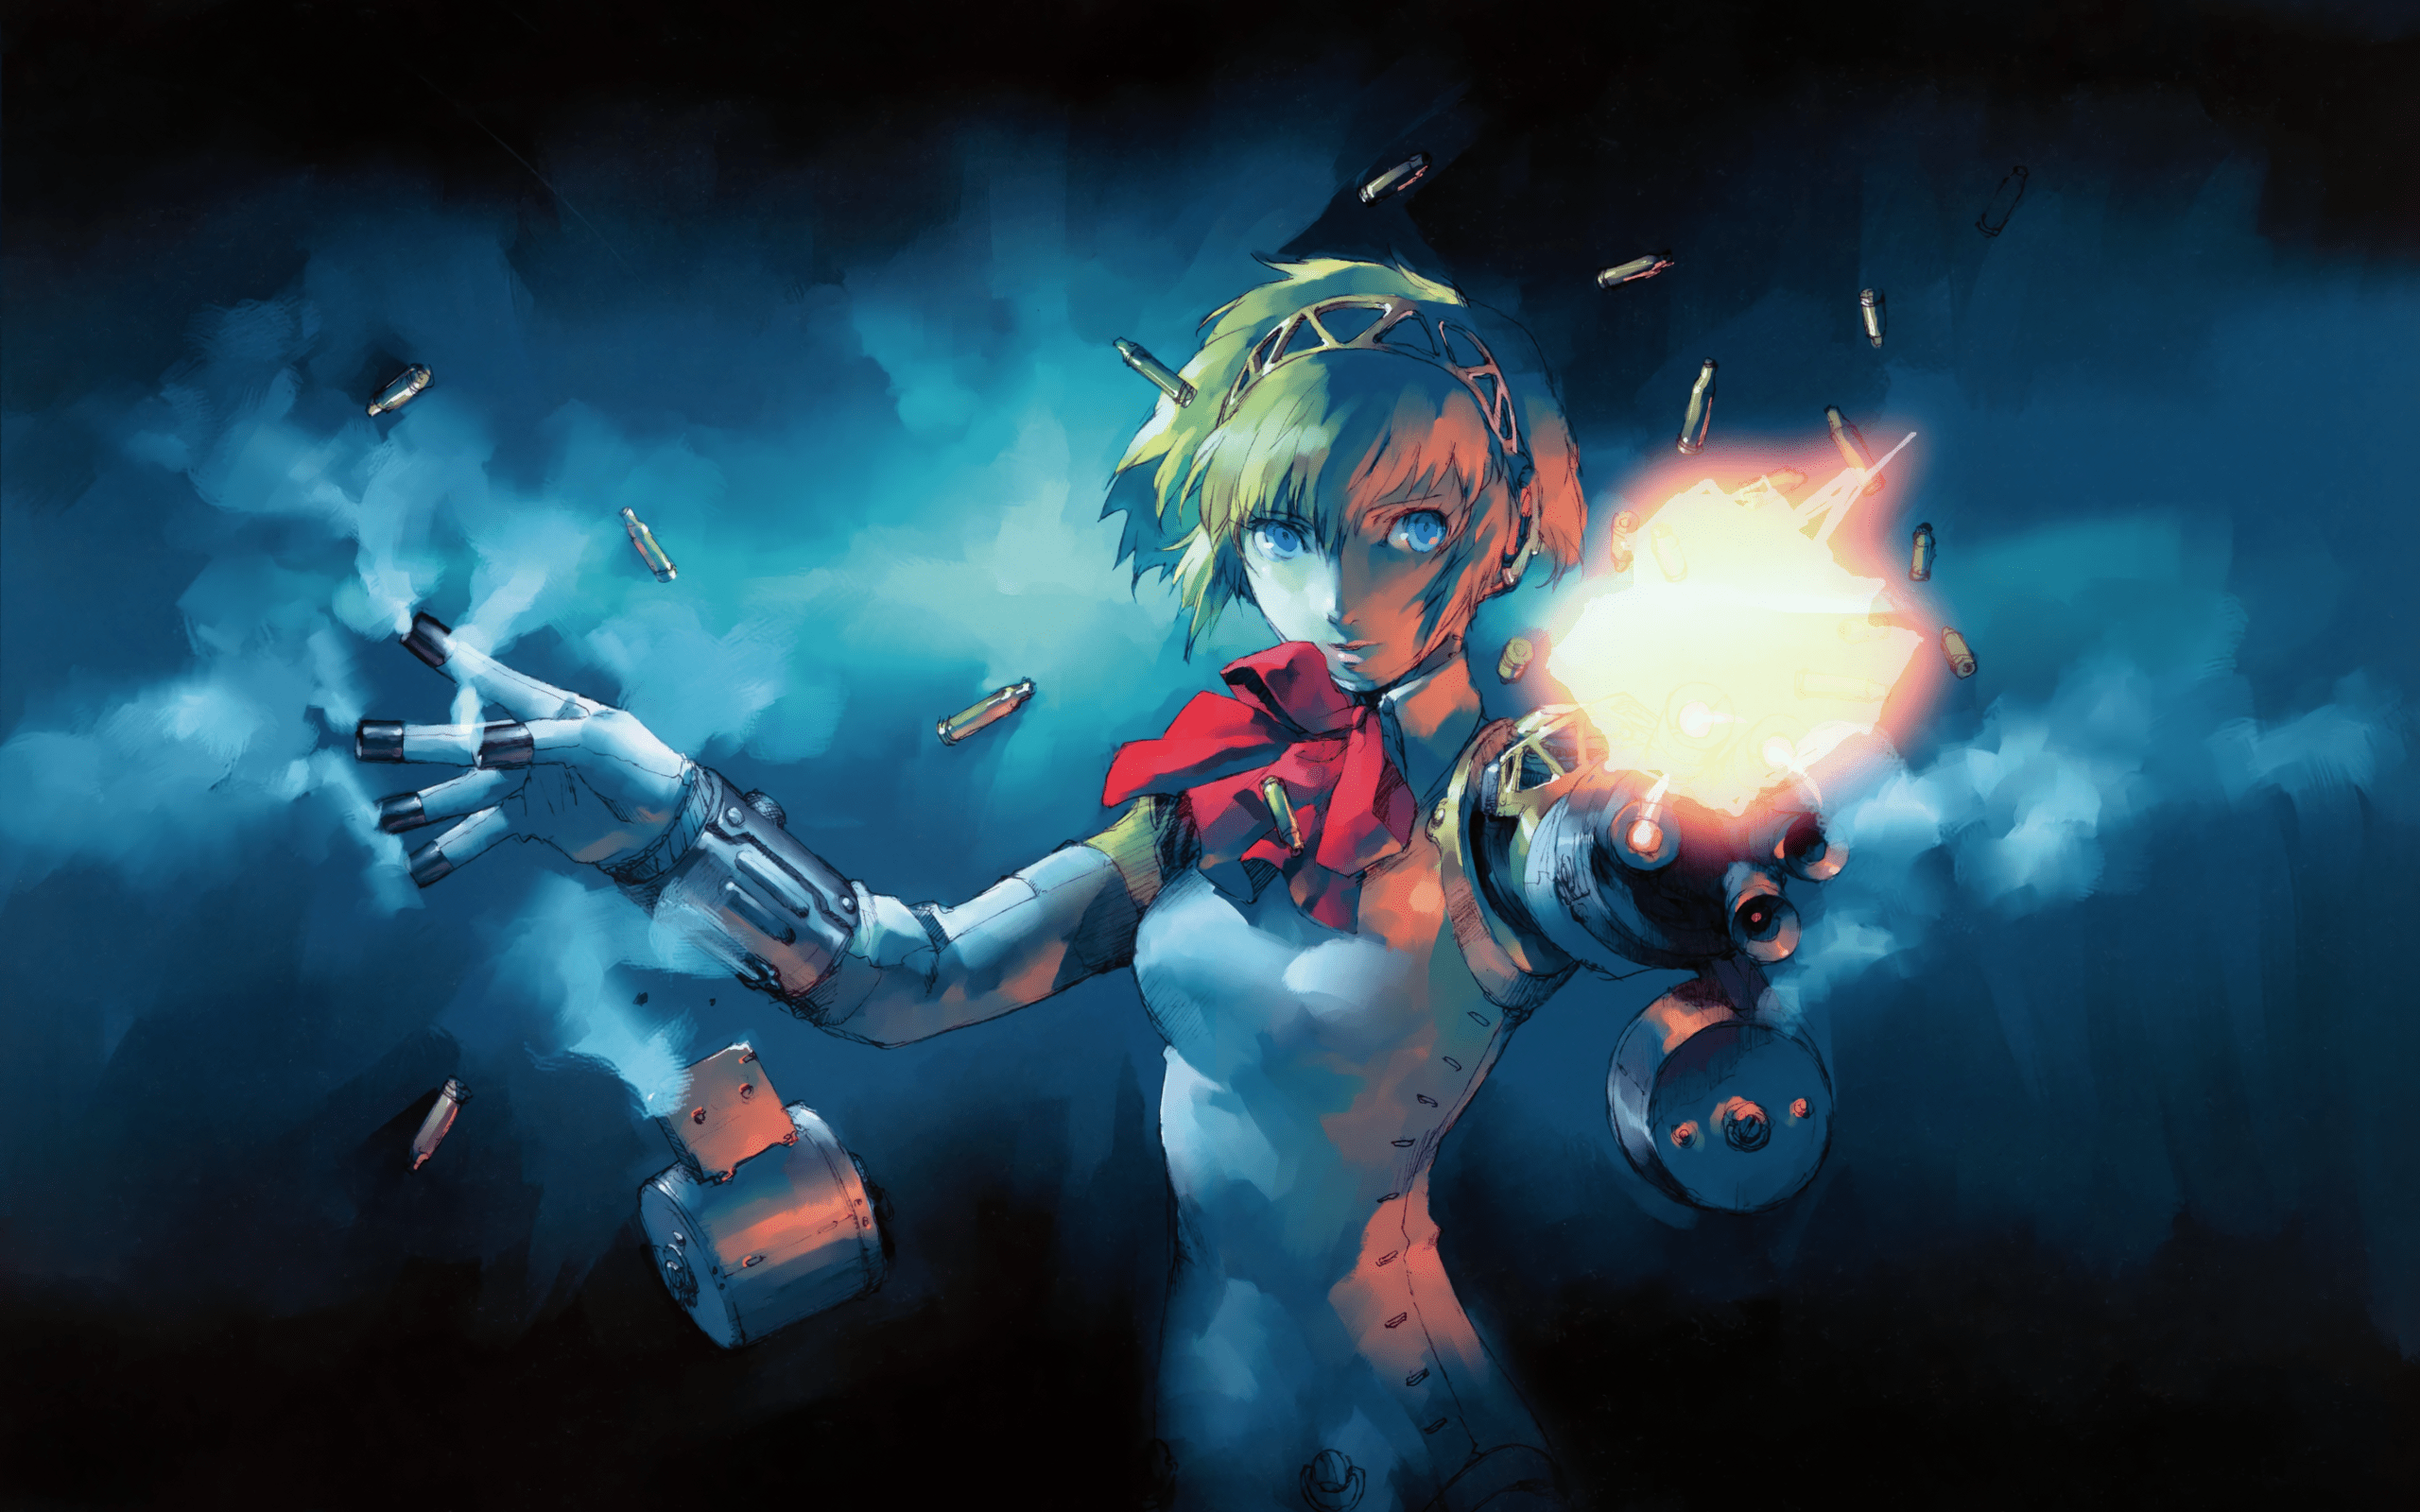 Anime Girl Wallpapers Persona 3 Anime Drawing Games Weapons Sci Fi Futuristic